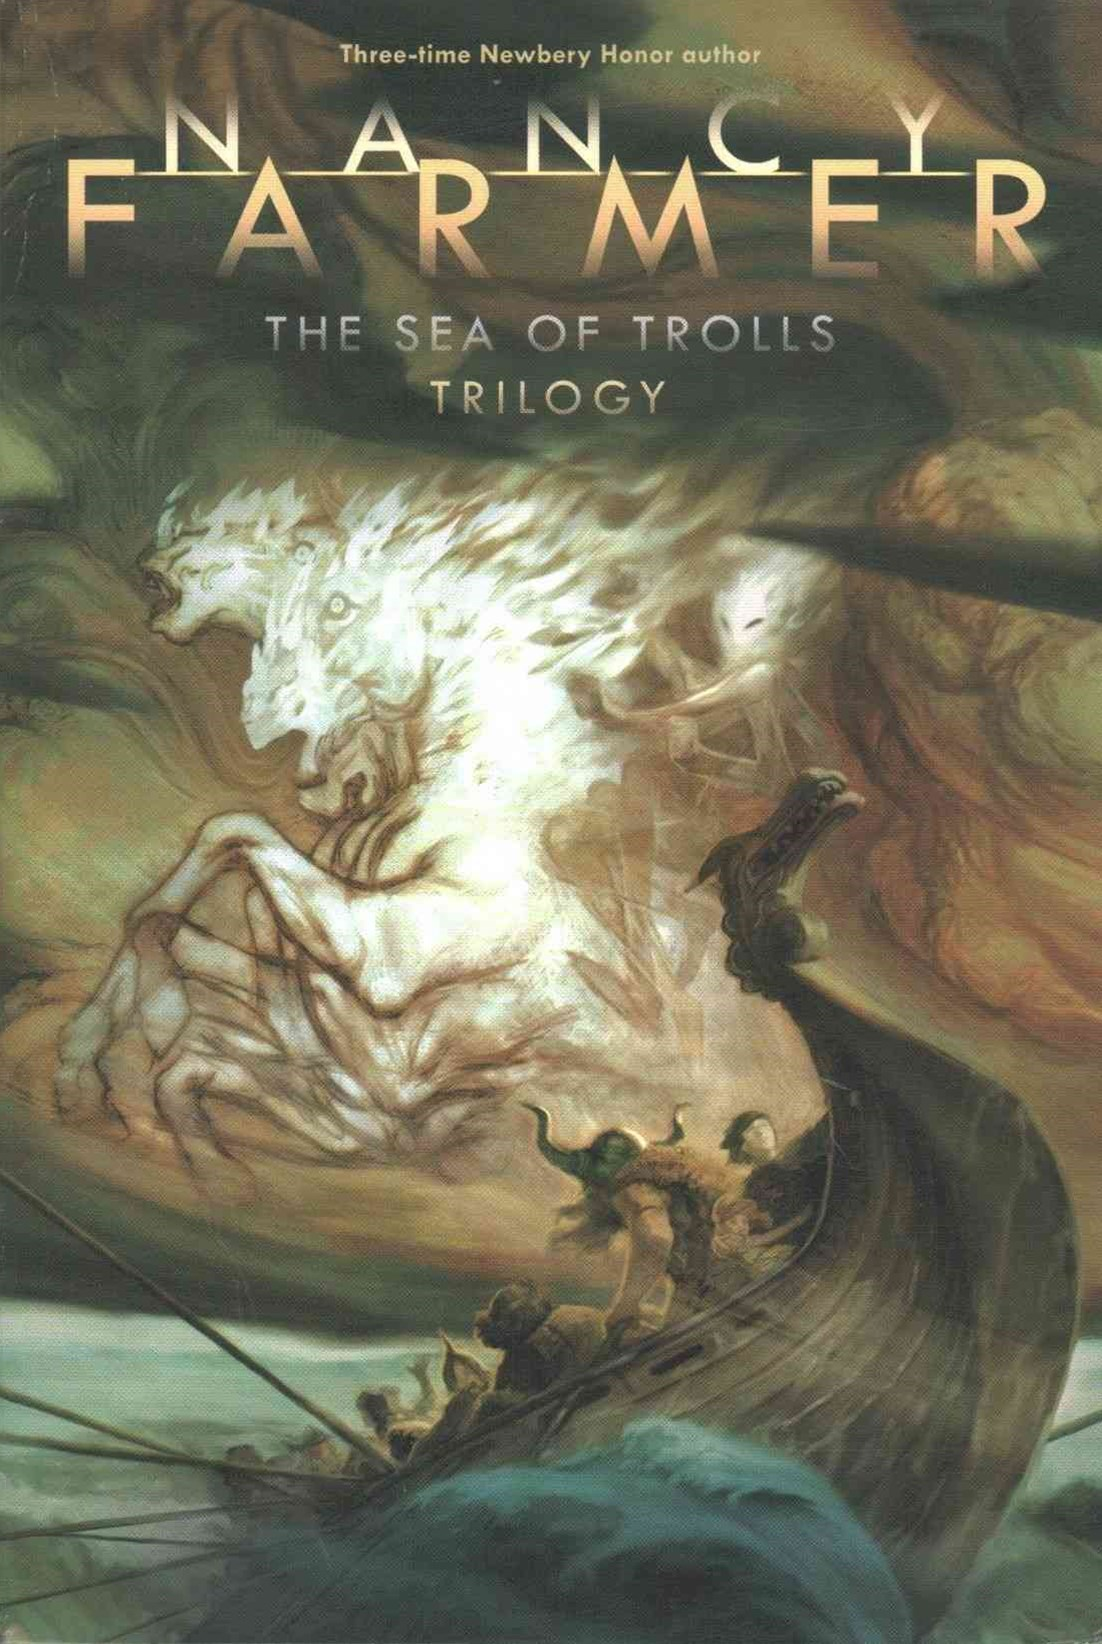 The Sea of Trolls Trilogy